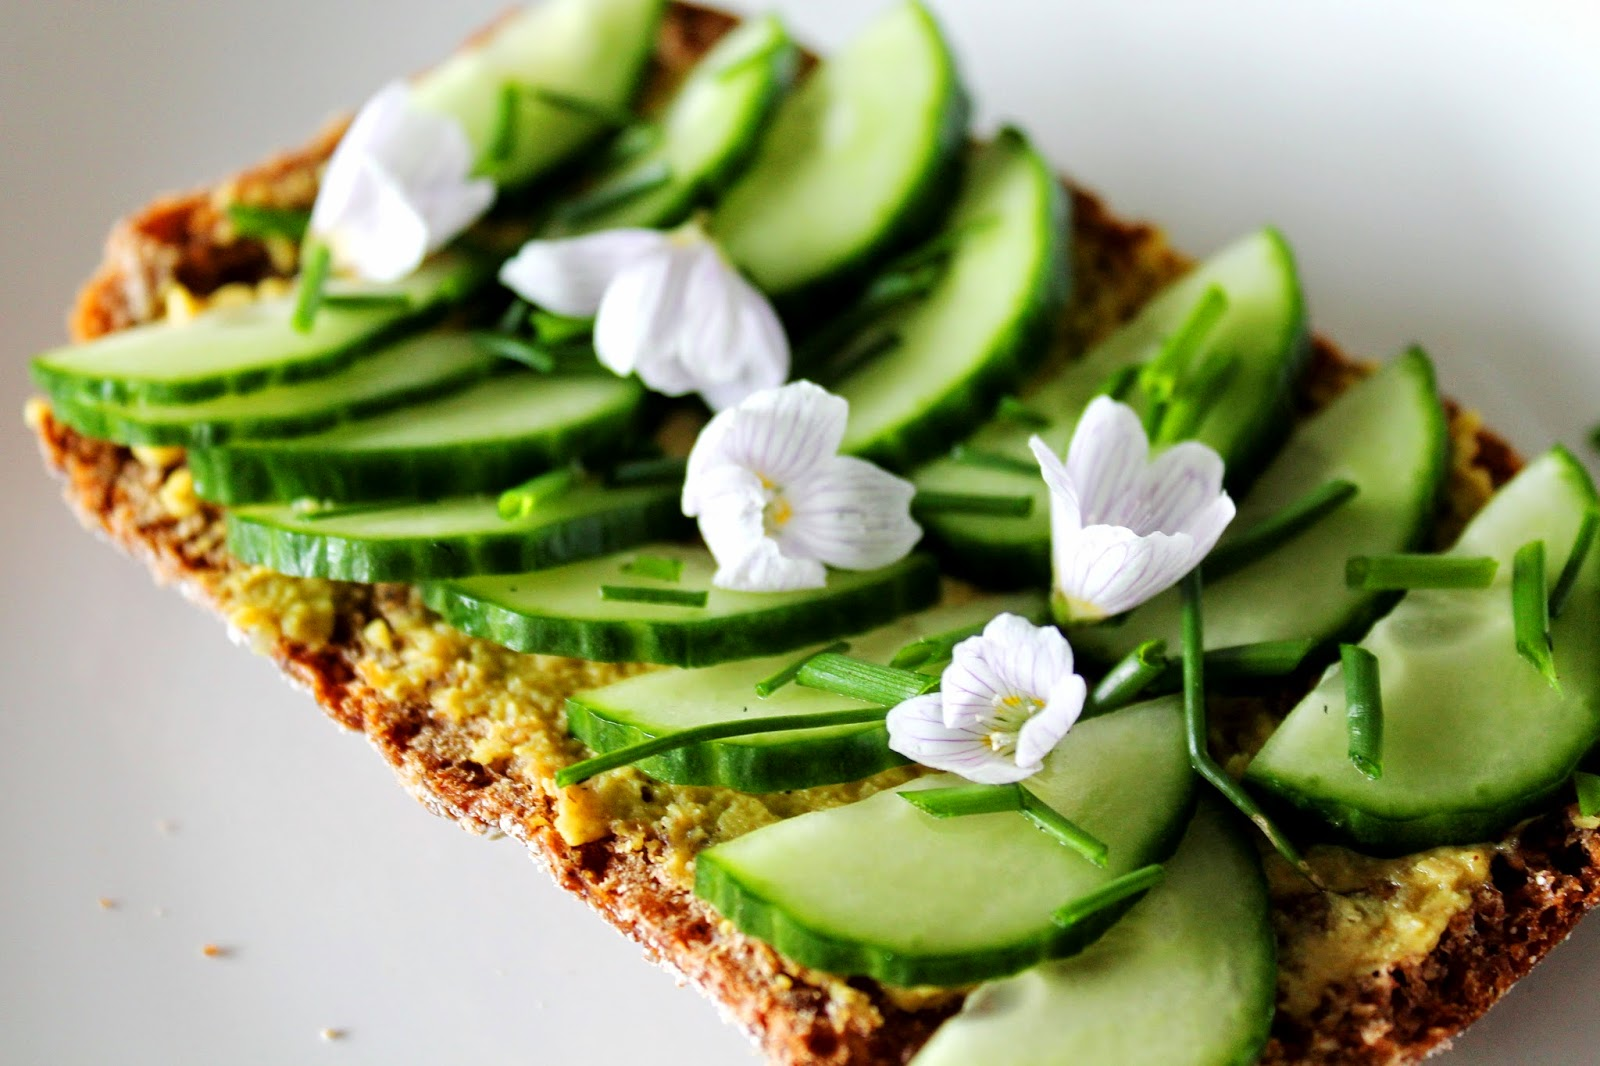 Rye bread with hummus, cucumber, chive and wood sorrel flowers | Alinan kotona blog